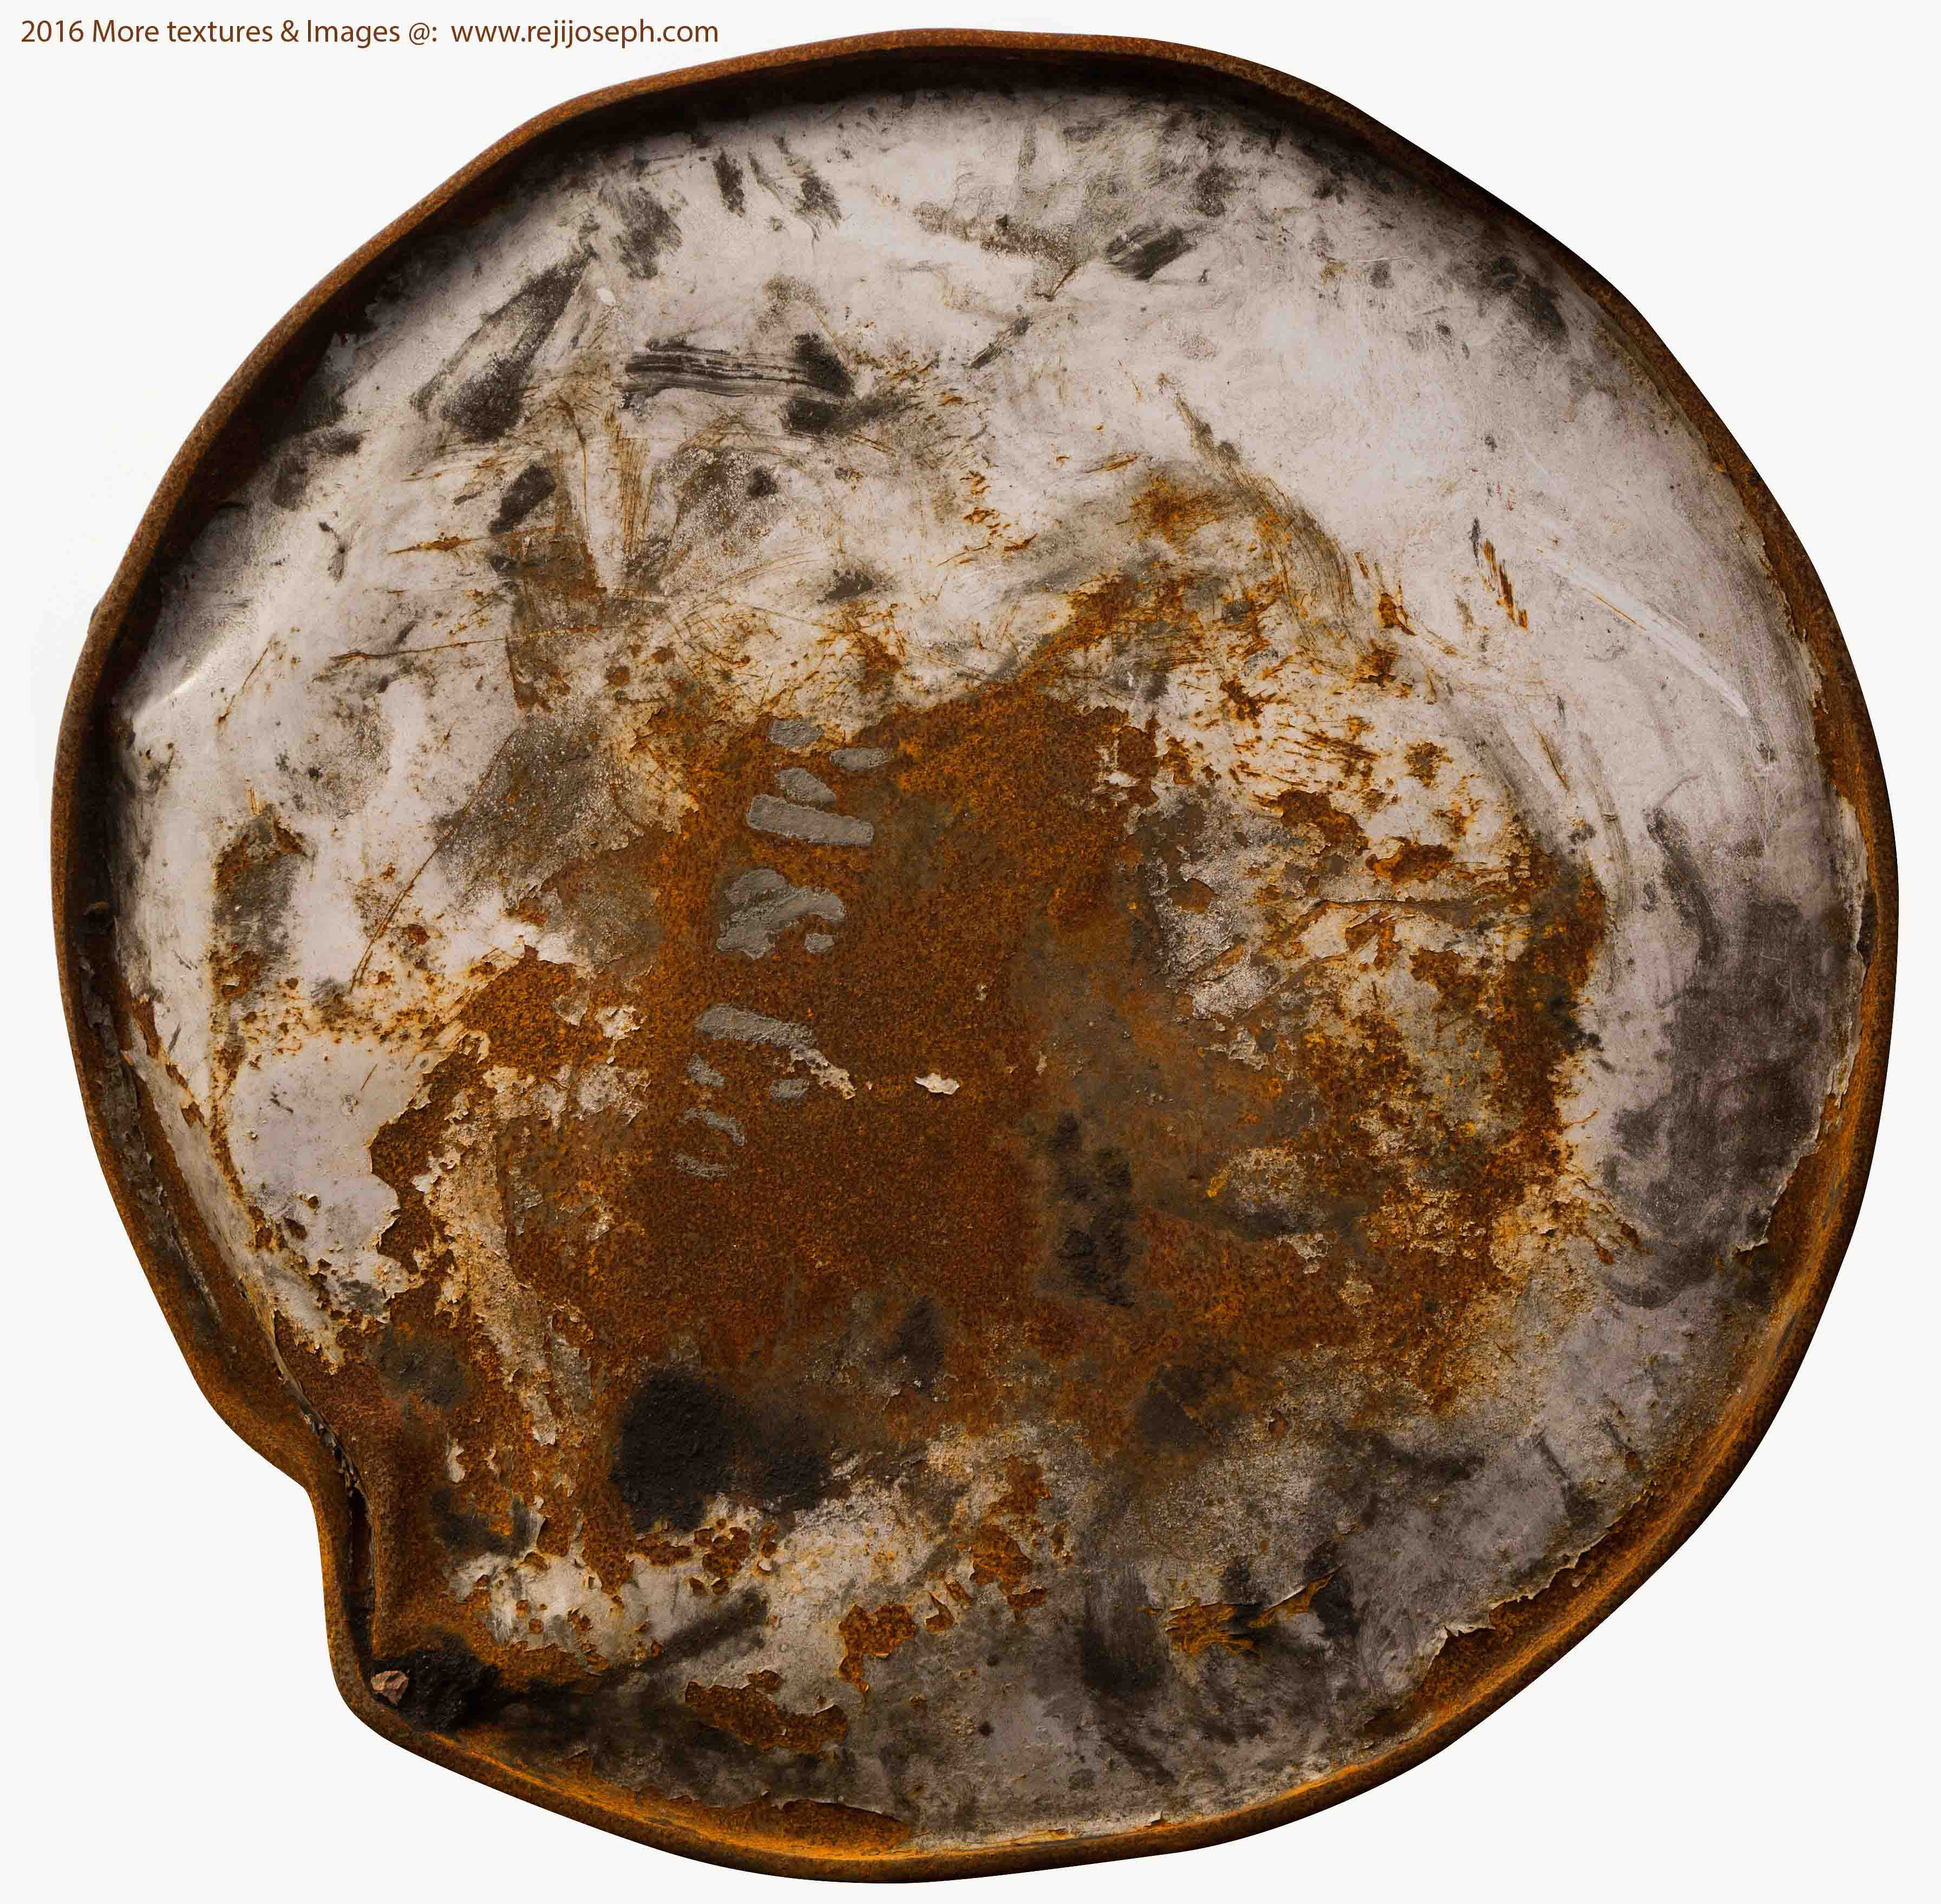 Rusty metal Oil can texture 00012